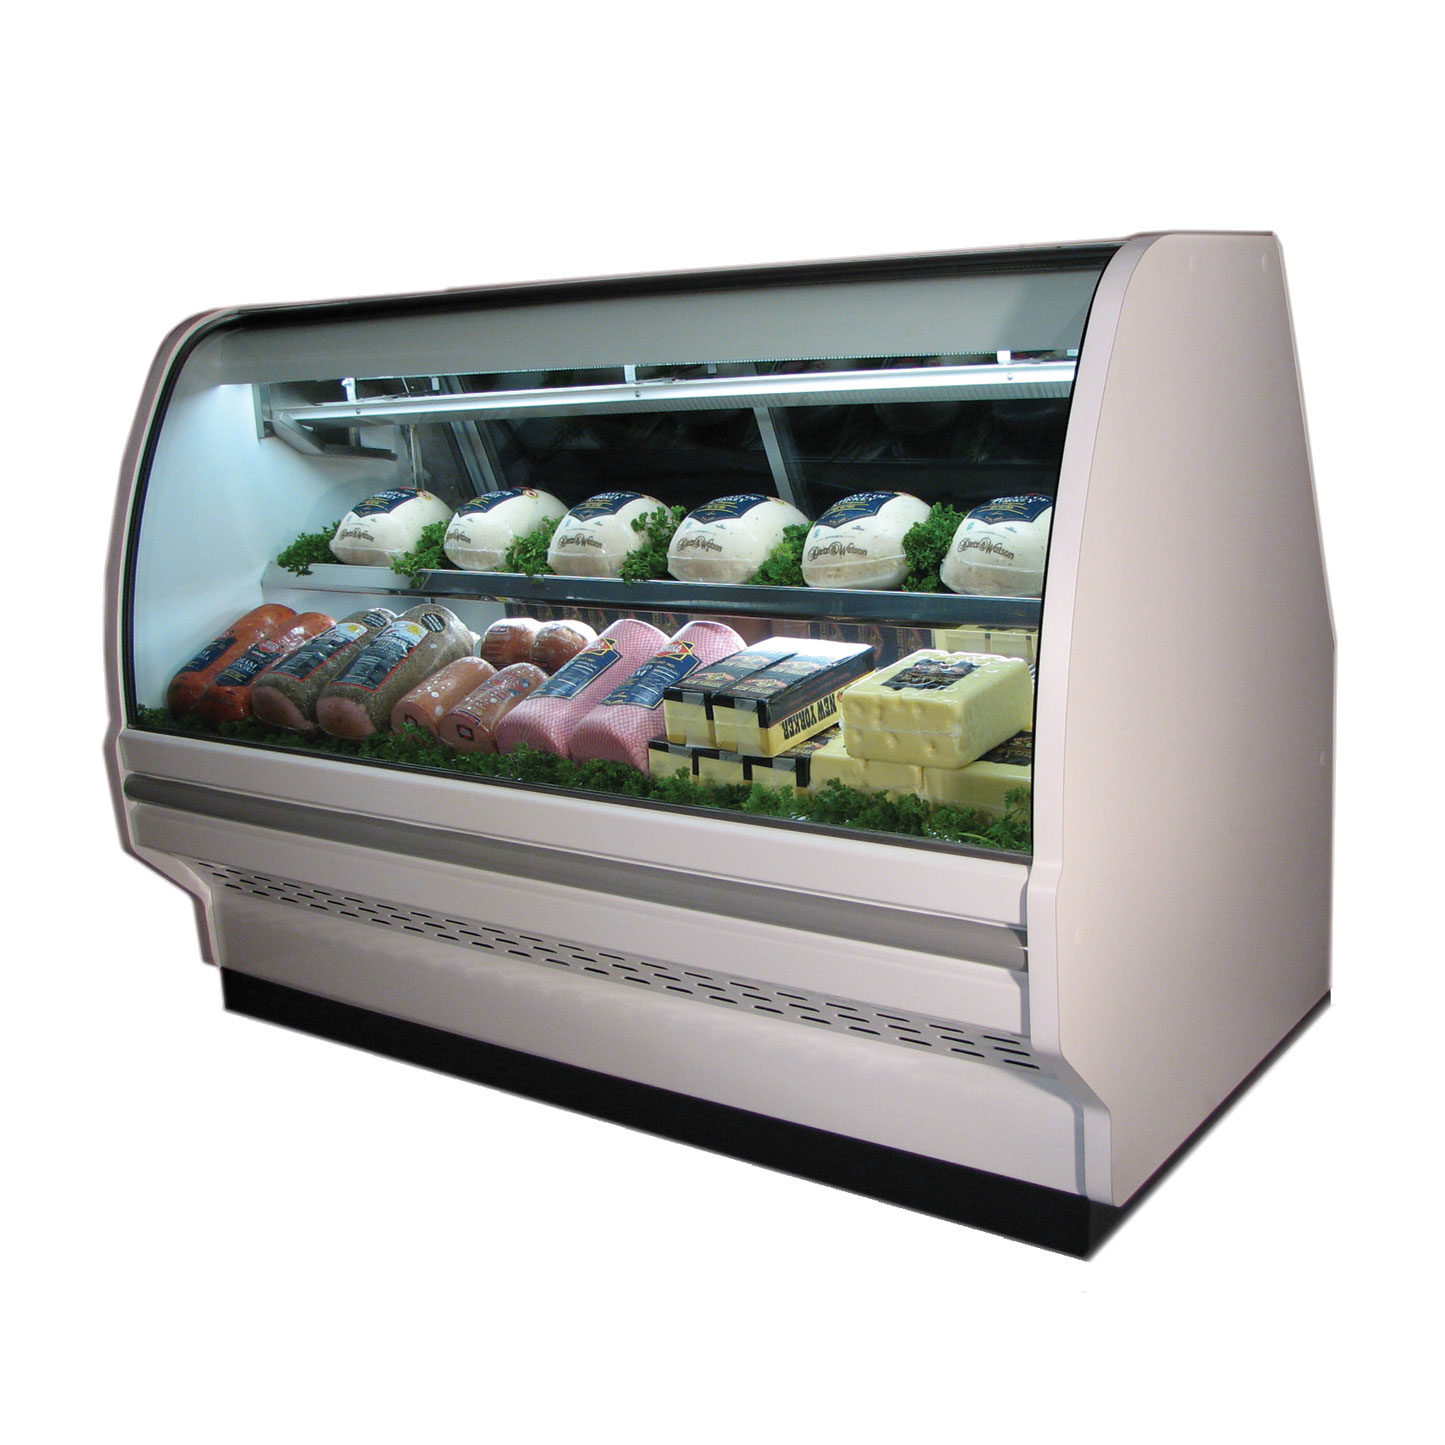 Howard-McCray R-CDS40E-4C-S-LED display case, refrigerated deli